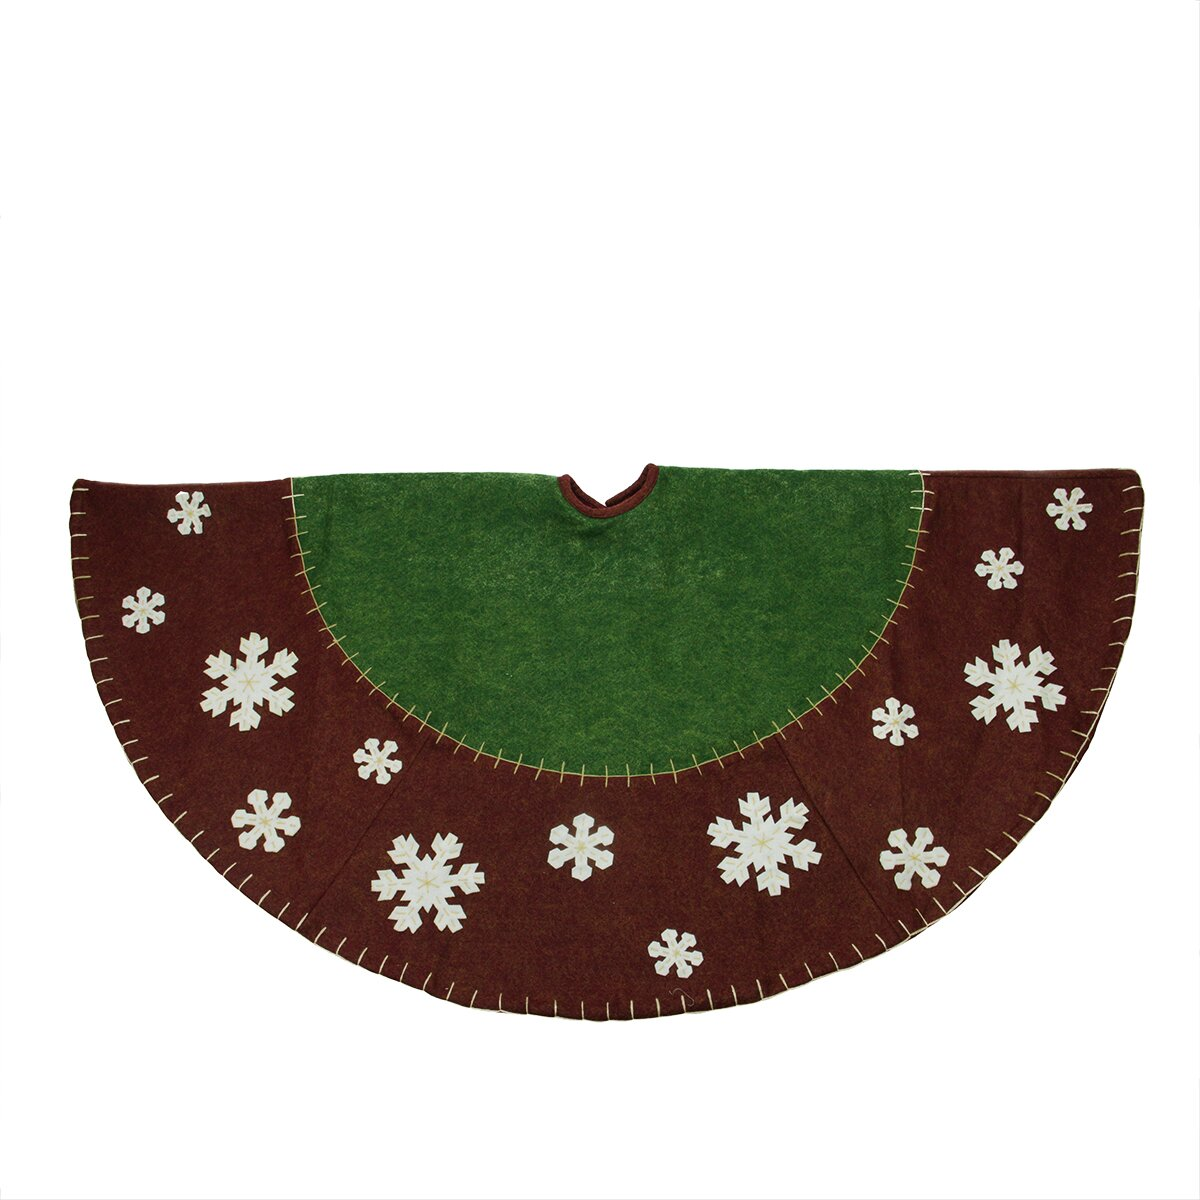 Northlight country christmas tree skirt with snowflake